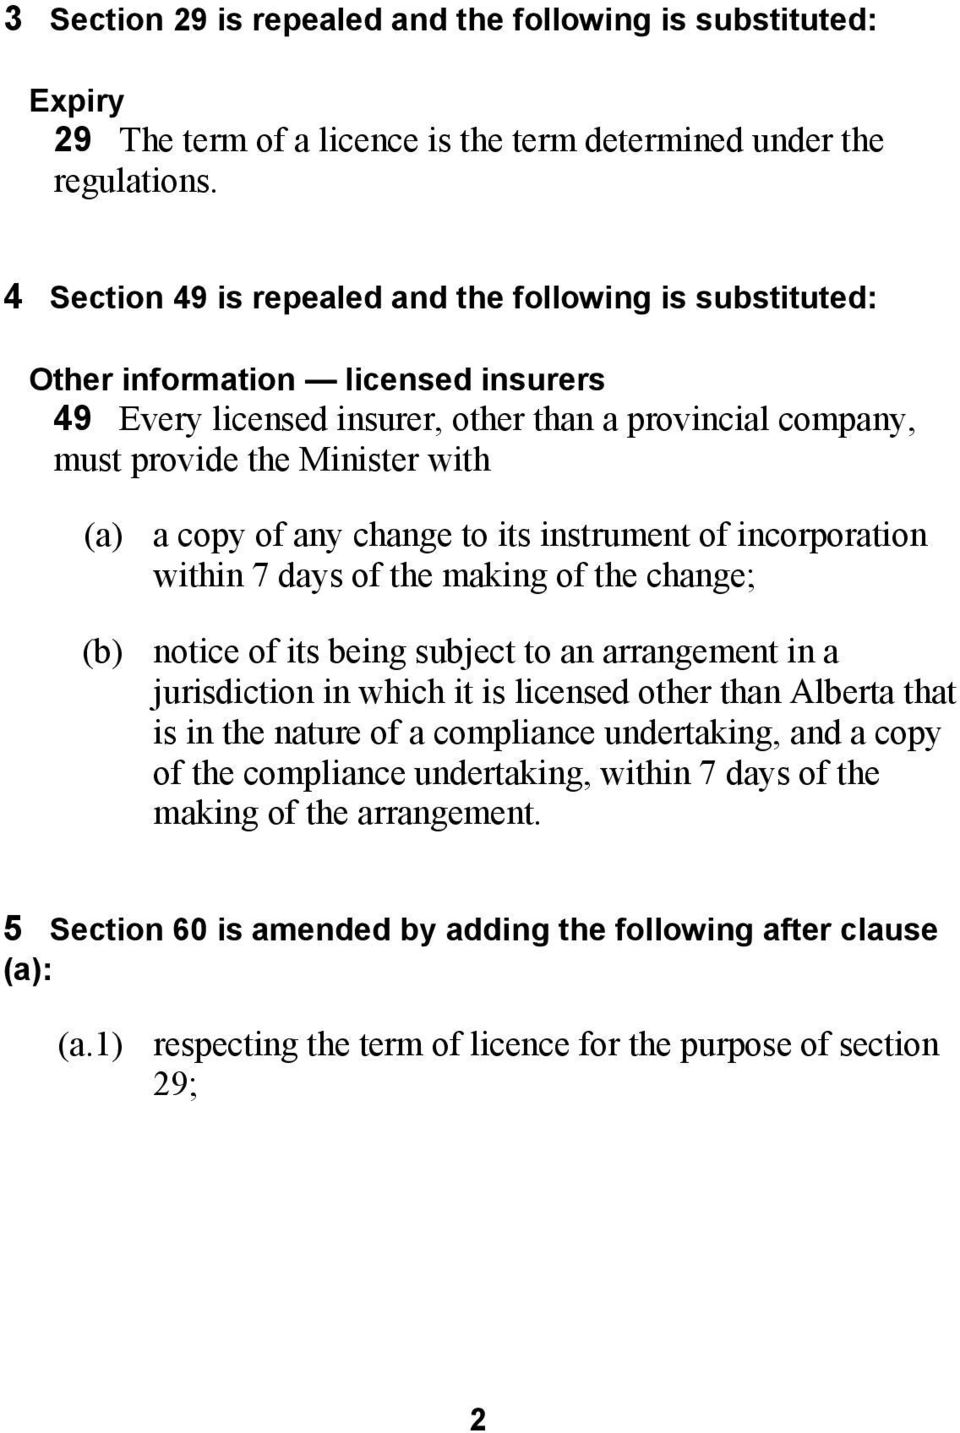 any change to its instrument of incorporation within 7 days of the making of the change; (b) notice of its being subject to an arrangement in a jurisdiction in which it is licensed other than Alberta